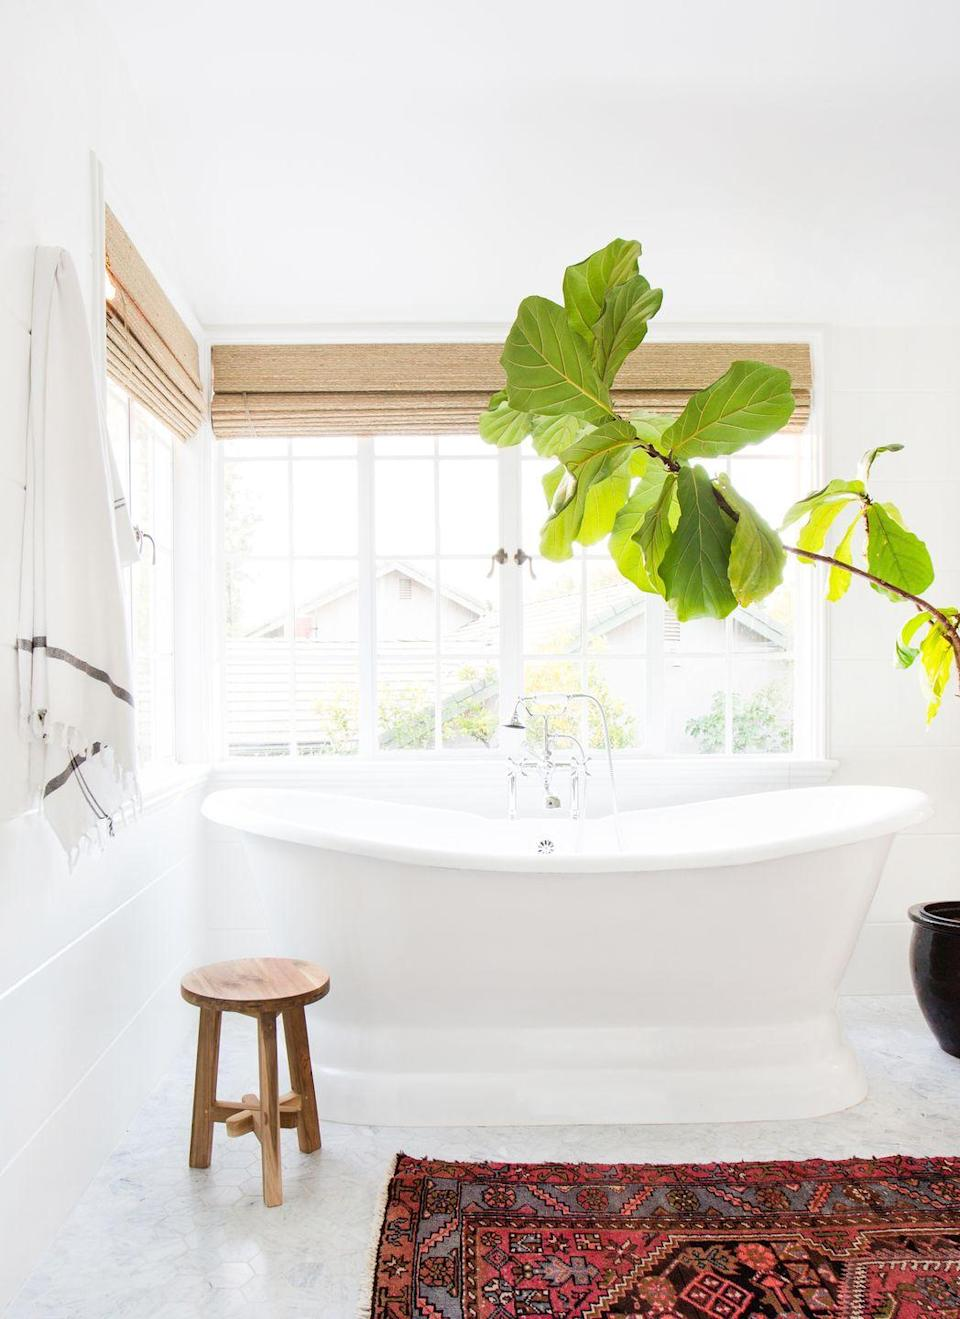 <p>Proof that a potted plant can go a <em>long</em> way. Combined with tons of natural light, this bathroom design by Amber Interiors is a true oasis. </p>